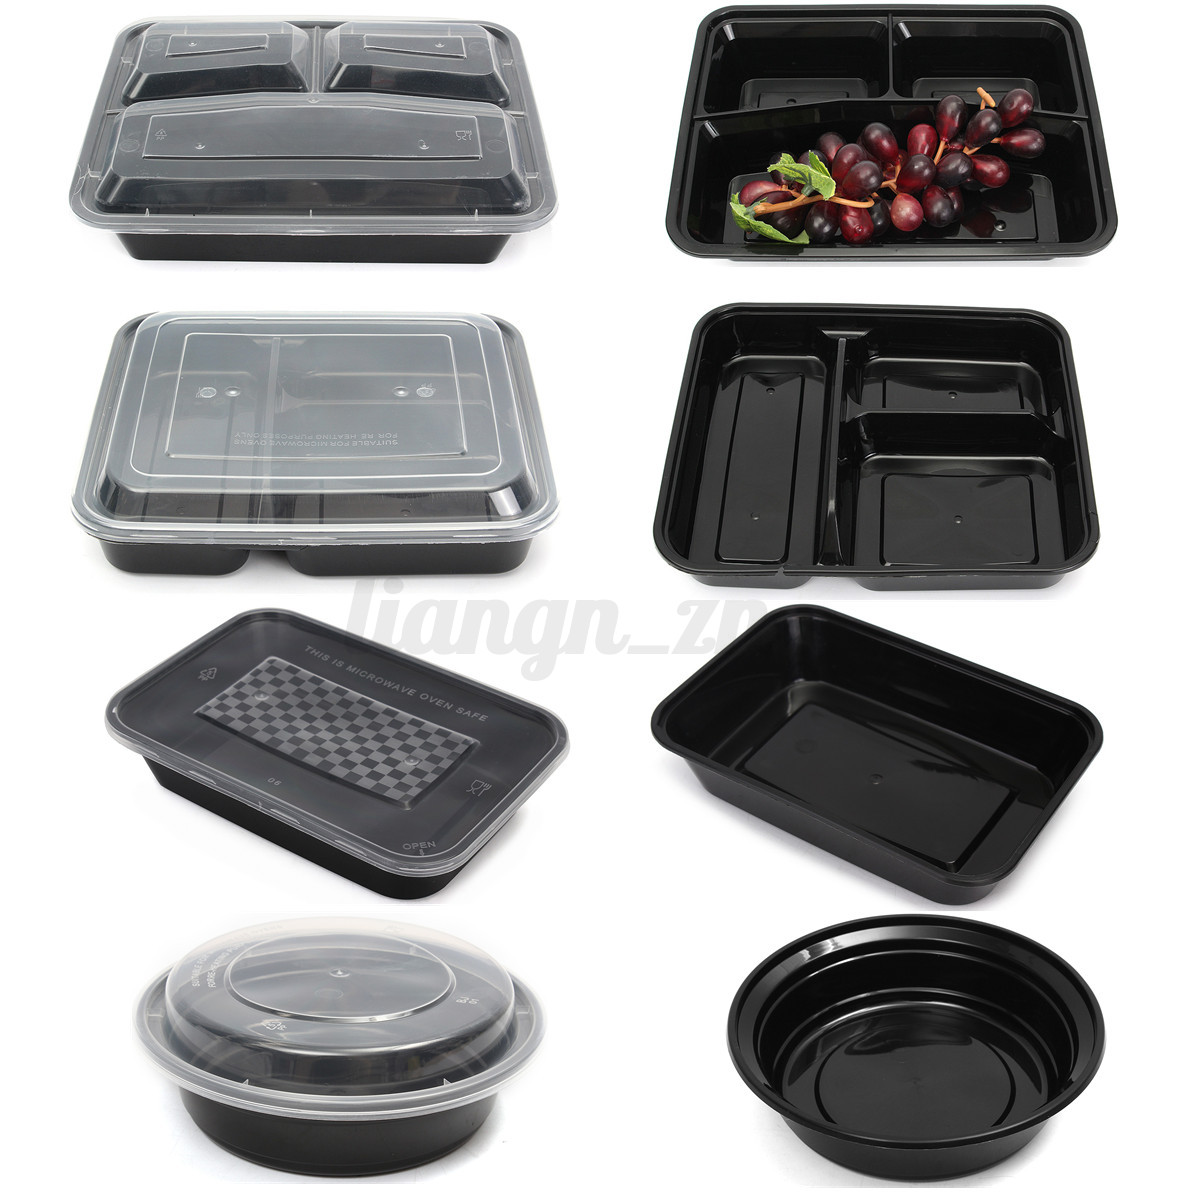 bo te d jeuner repas micro ondes lunch box bento pique. Black Bedroom Furniture Sets. Home Design Ideas